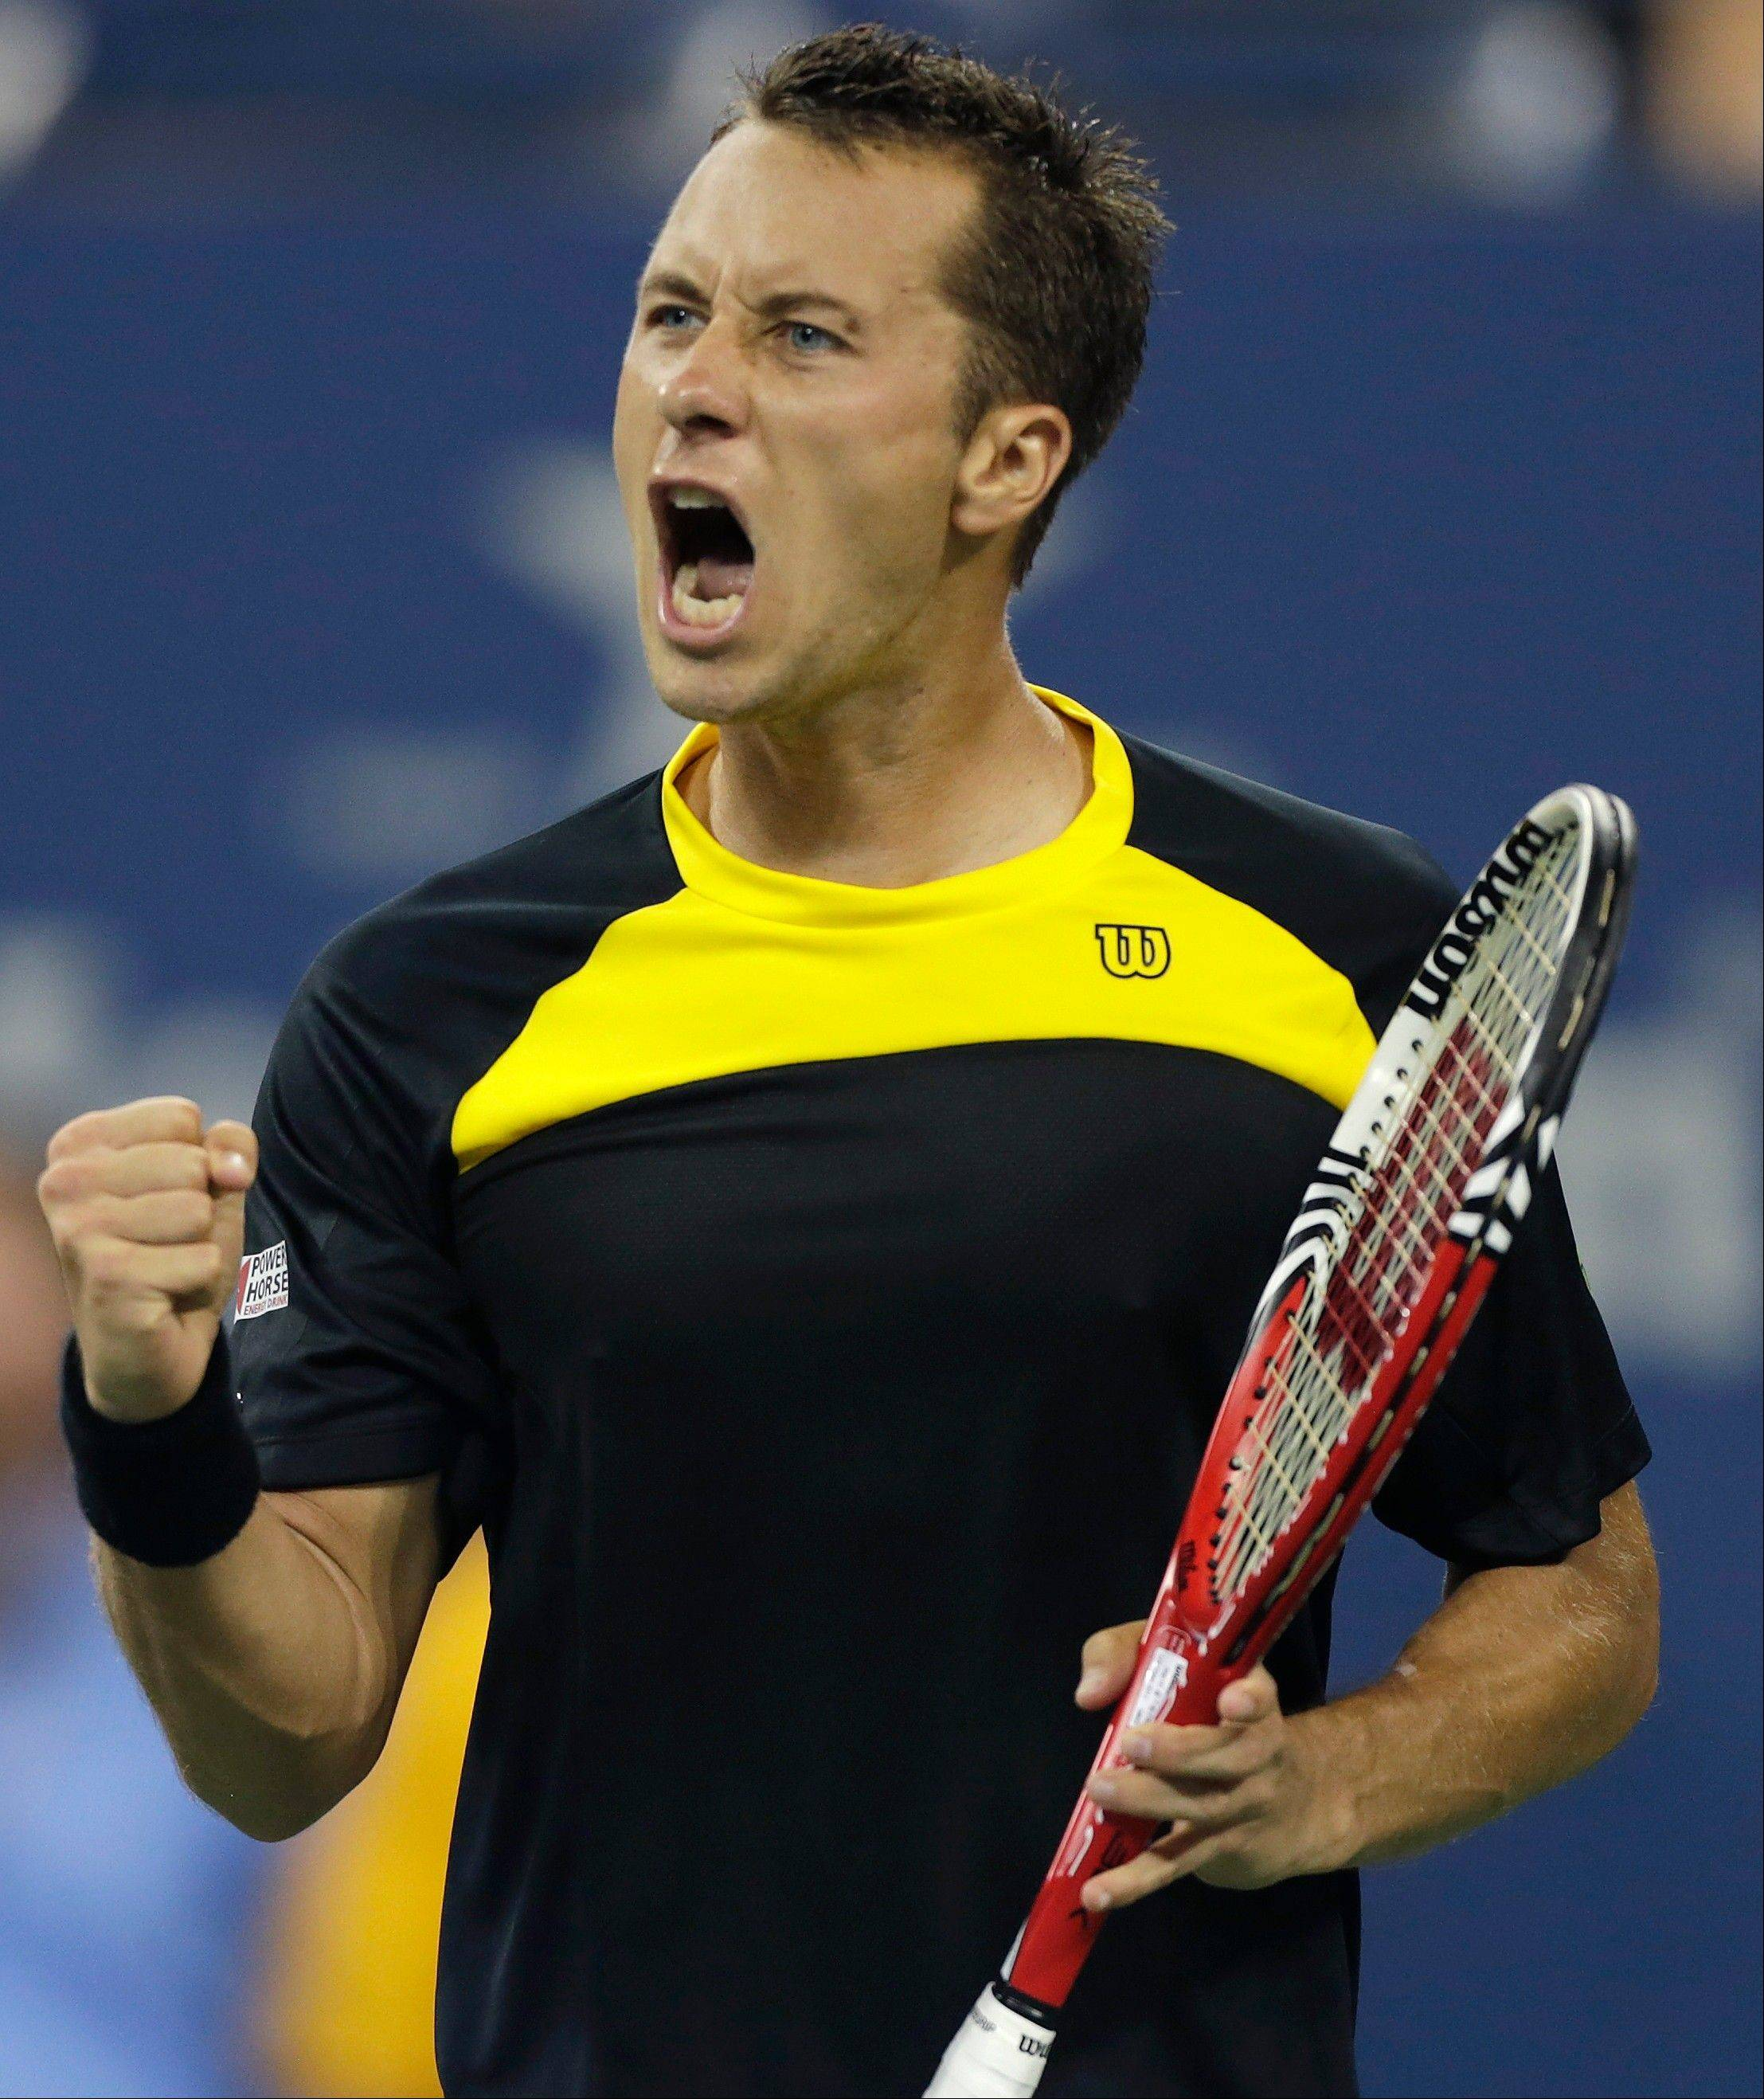 Philipp Kohlschreiber, of Germany, pumps his fist and yells during the fifth set against John Isner in the third round of play at the 2012 US Open tennis tournament, early Monday, Sept. 3, 2012 in New York. Kohlschreiber won 6-4, 3-6, 4-6, 6-3, 6-4. The match began on Sunday evening.